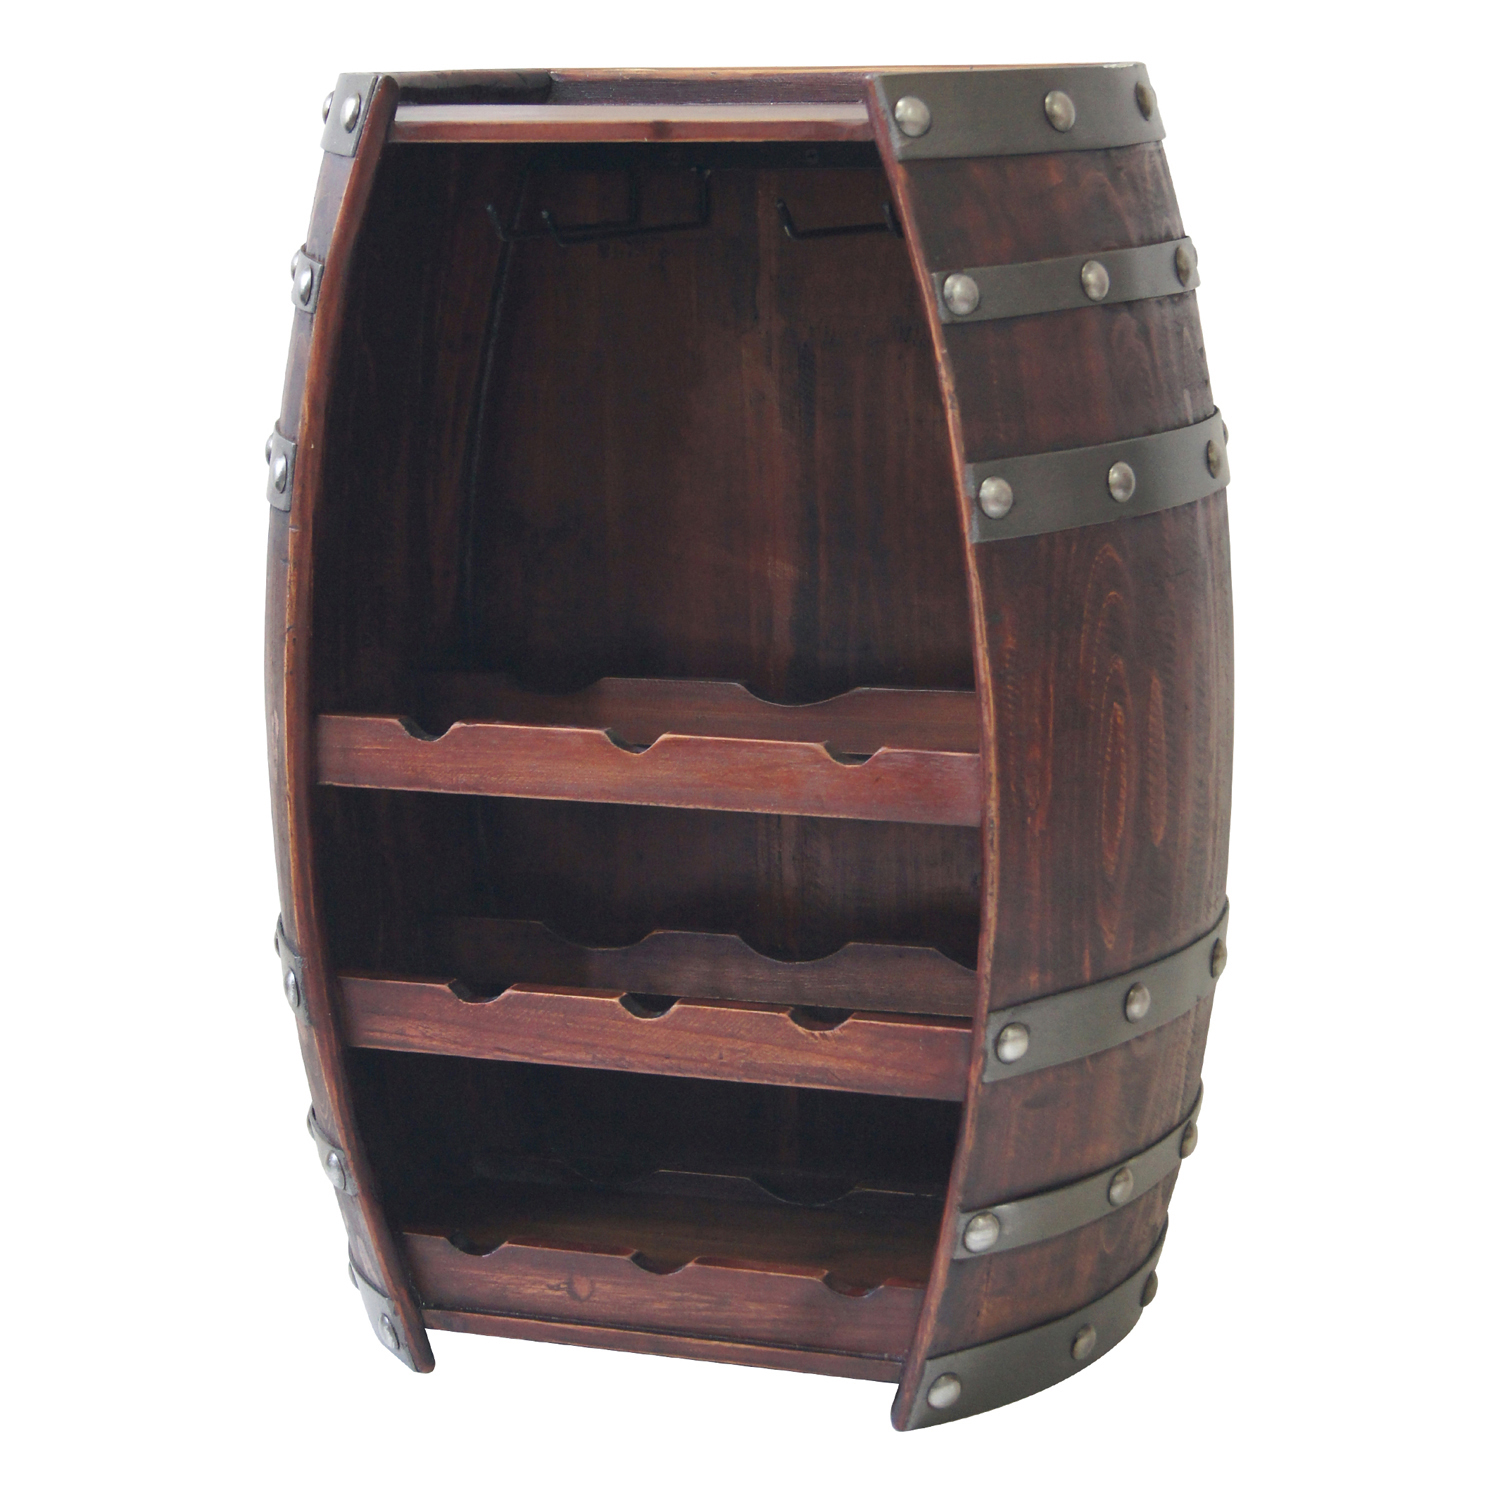 Wine Barrel 9 Bottle Wine Holder W/ Glass Racks